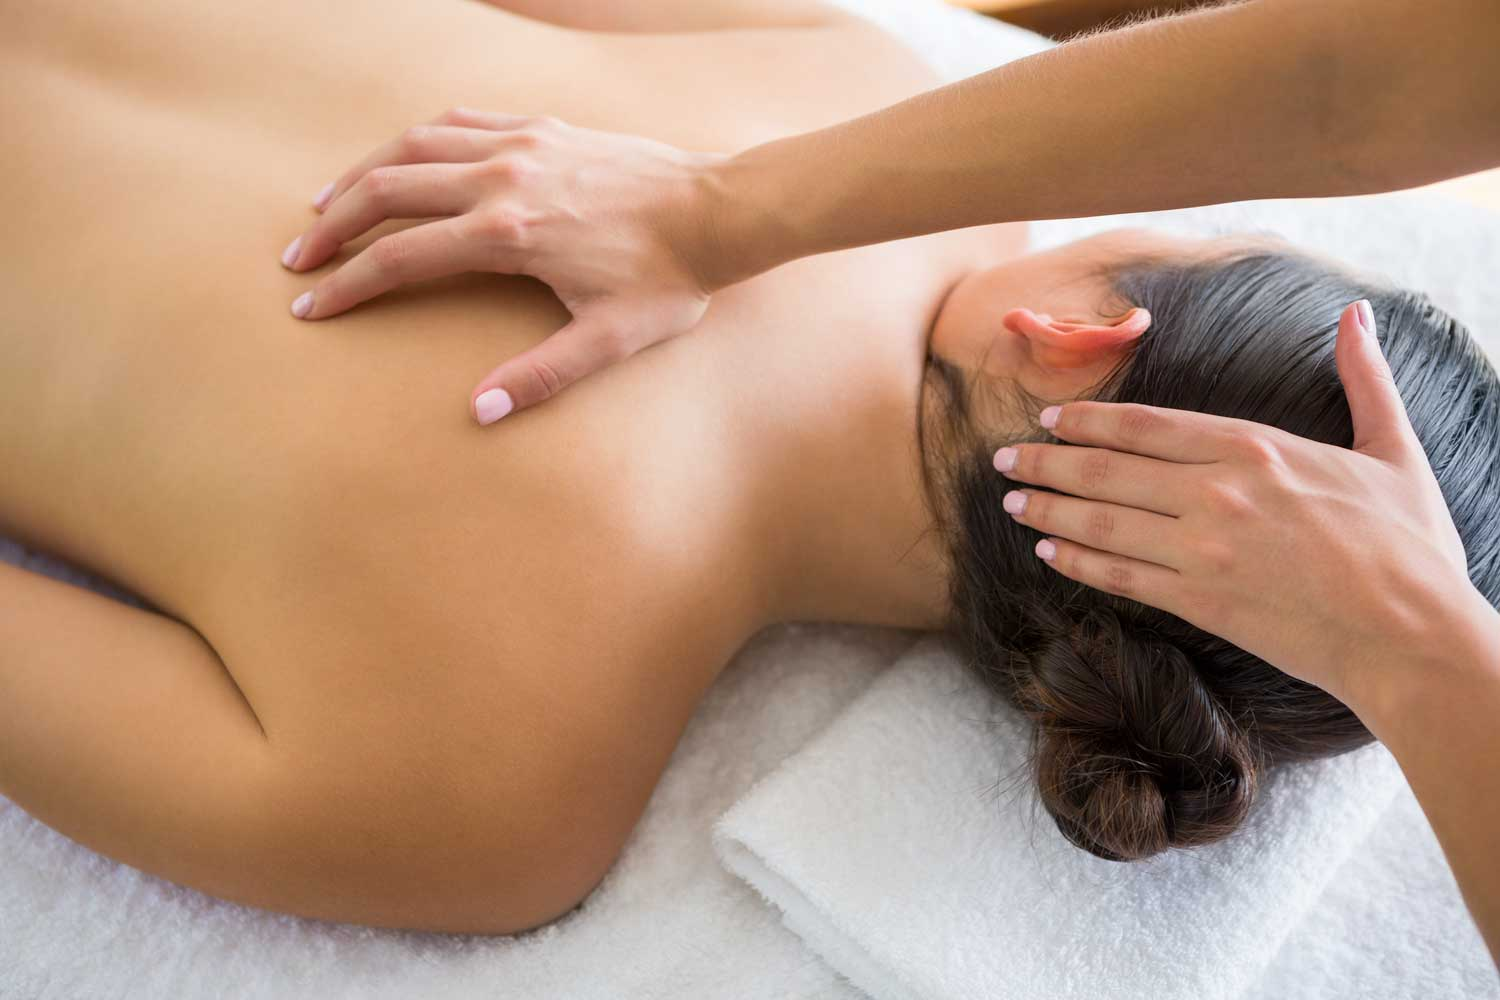 Massage therapist performing deep tissue massage on customer's neck and shoulder